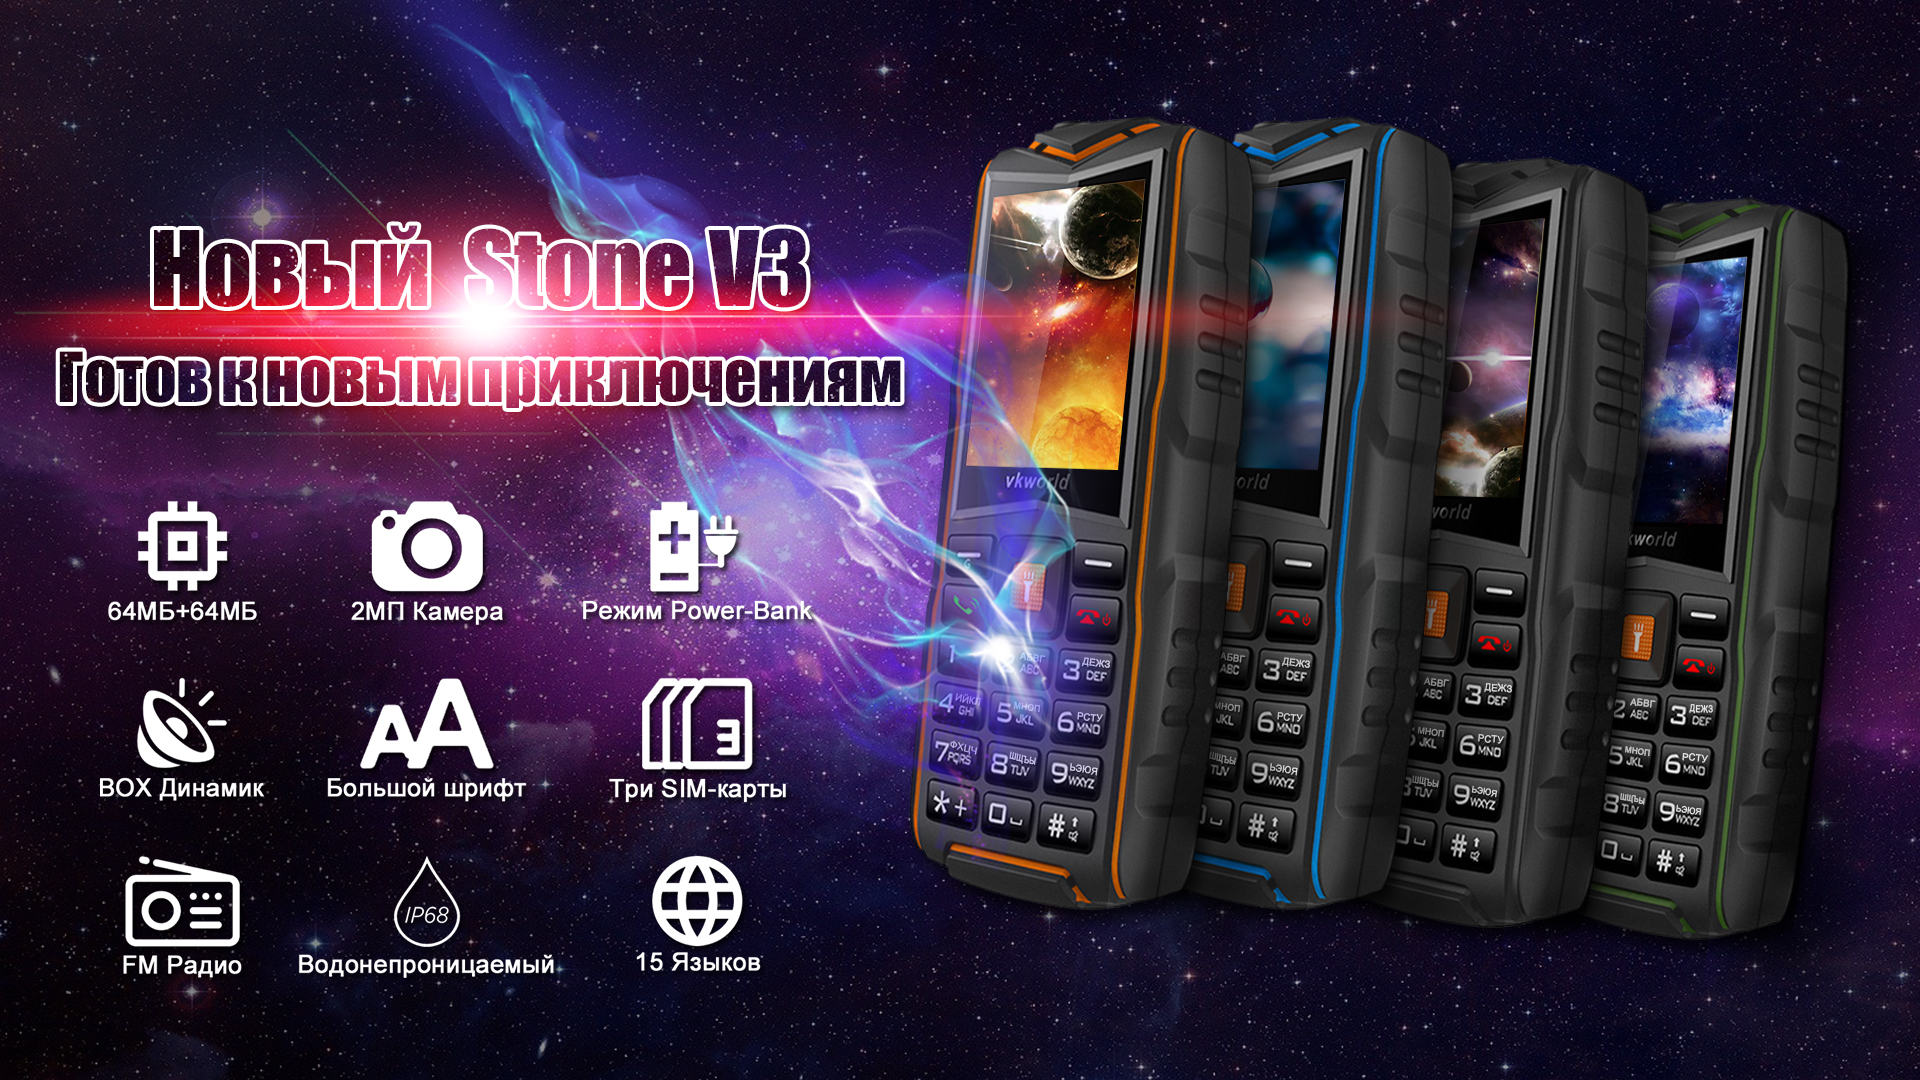 (Russian keyboard) Vkworld New Stone V3 3000mAh IP68 2.4 Inch 3 SIM 2MP Waterproof Outdooors Phone